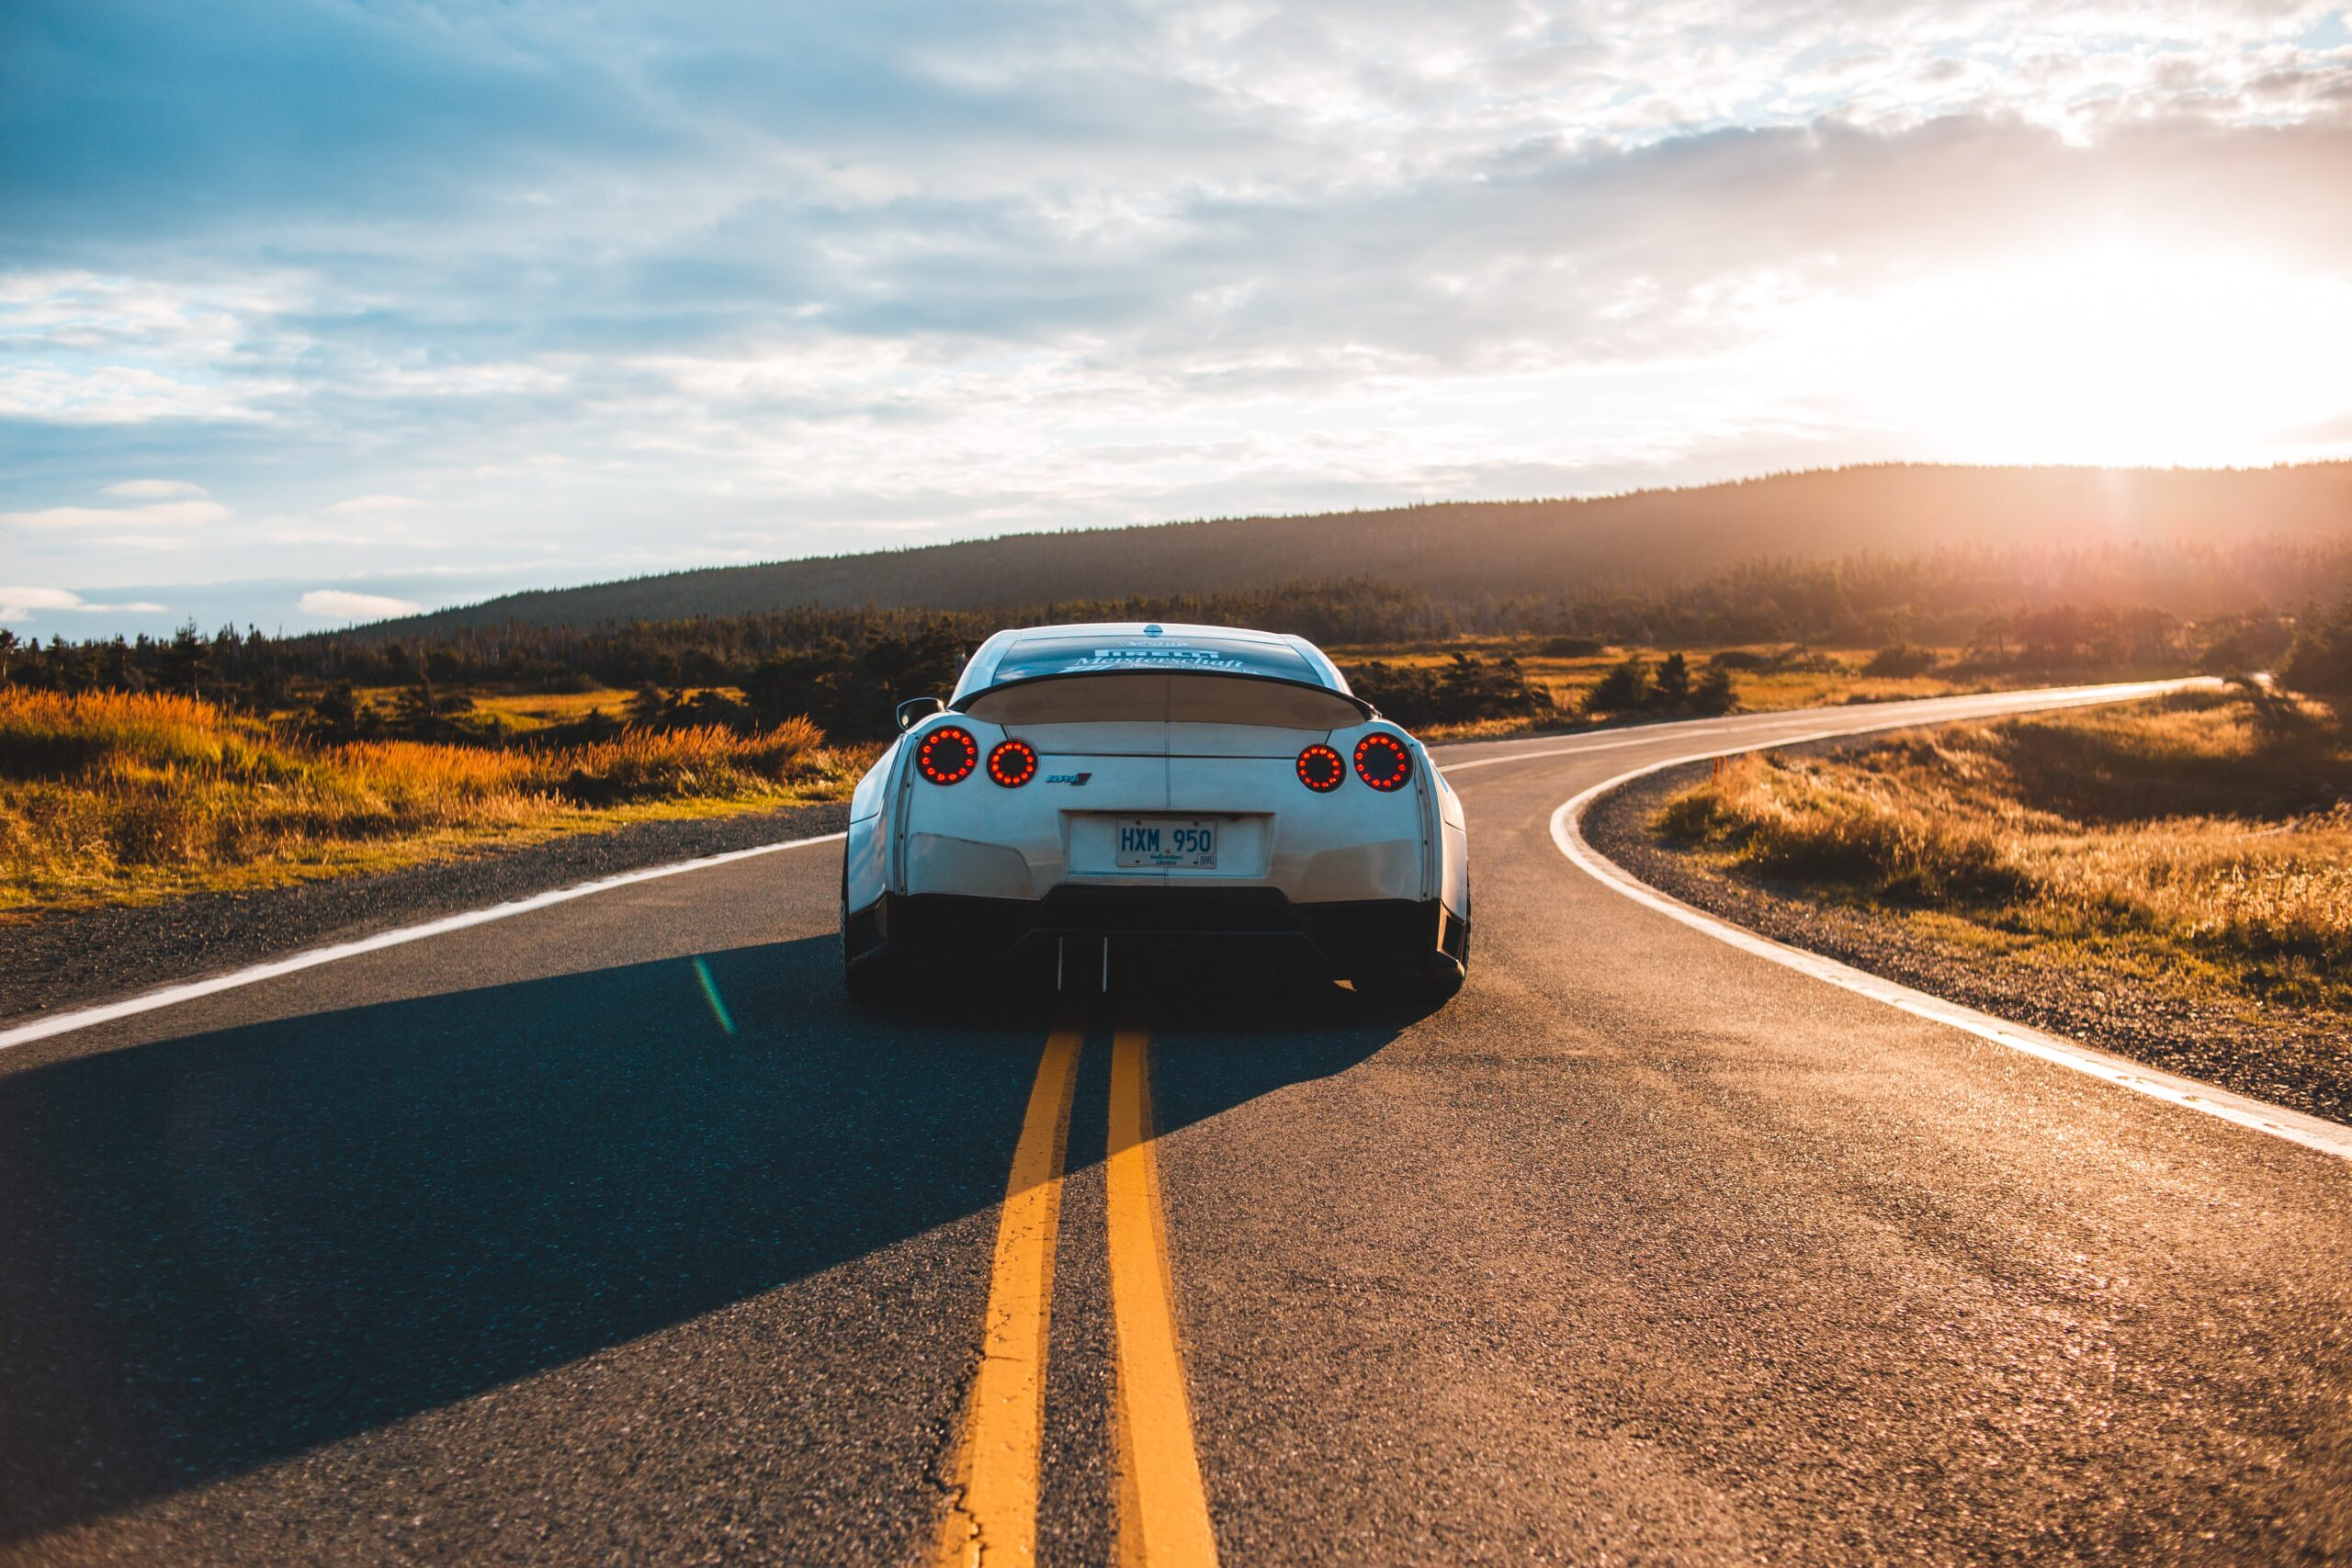 realvaluecars background